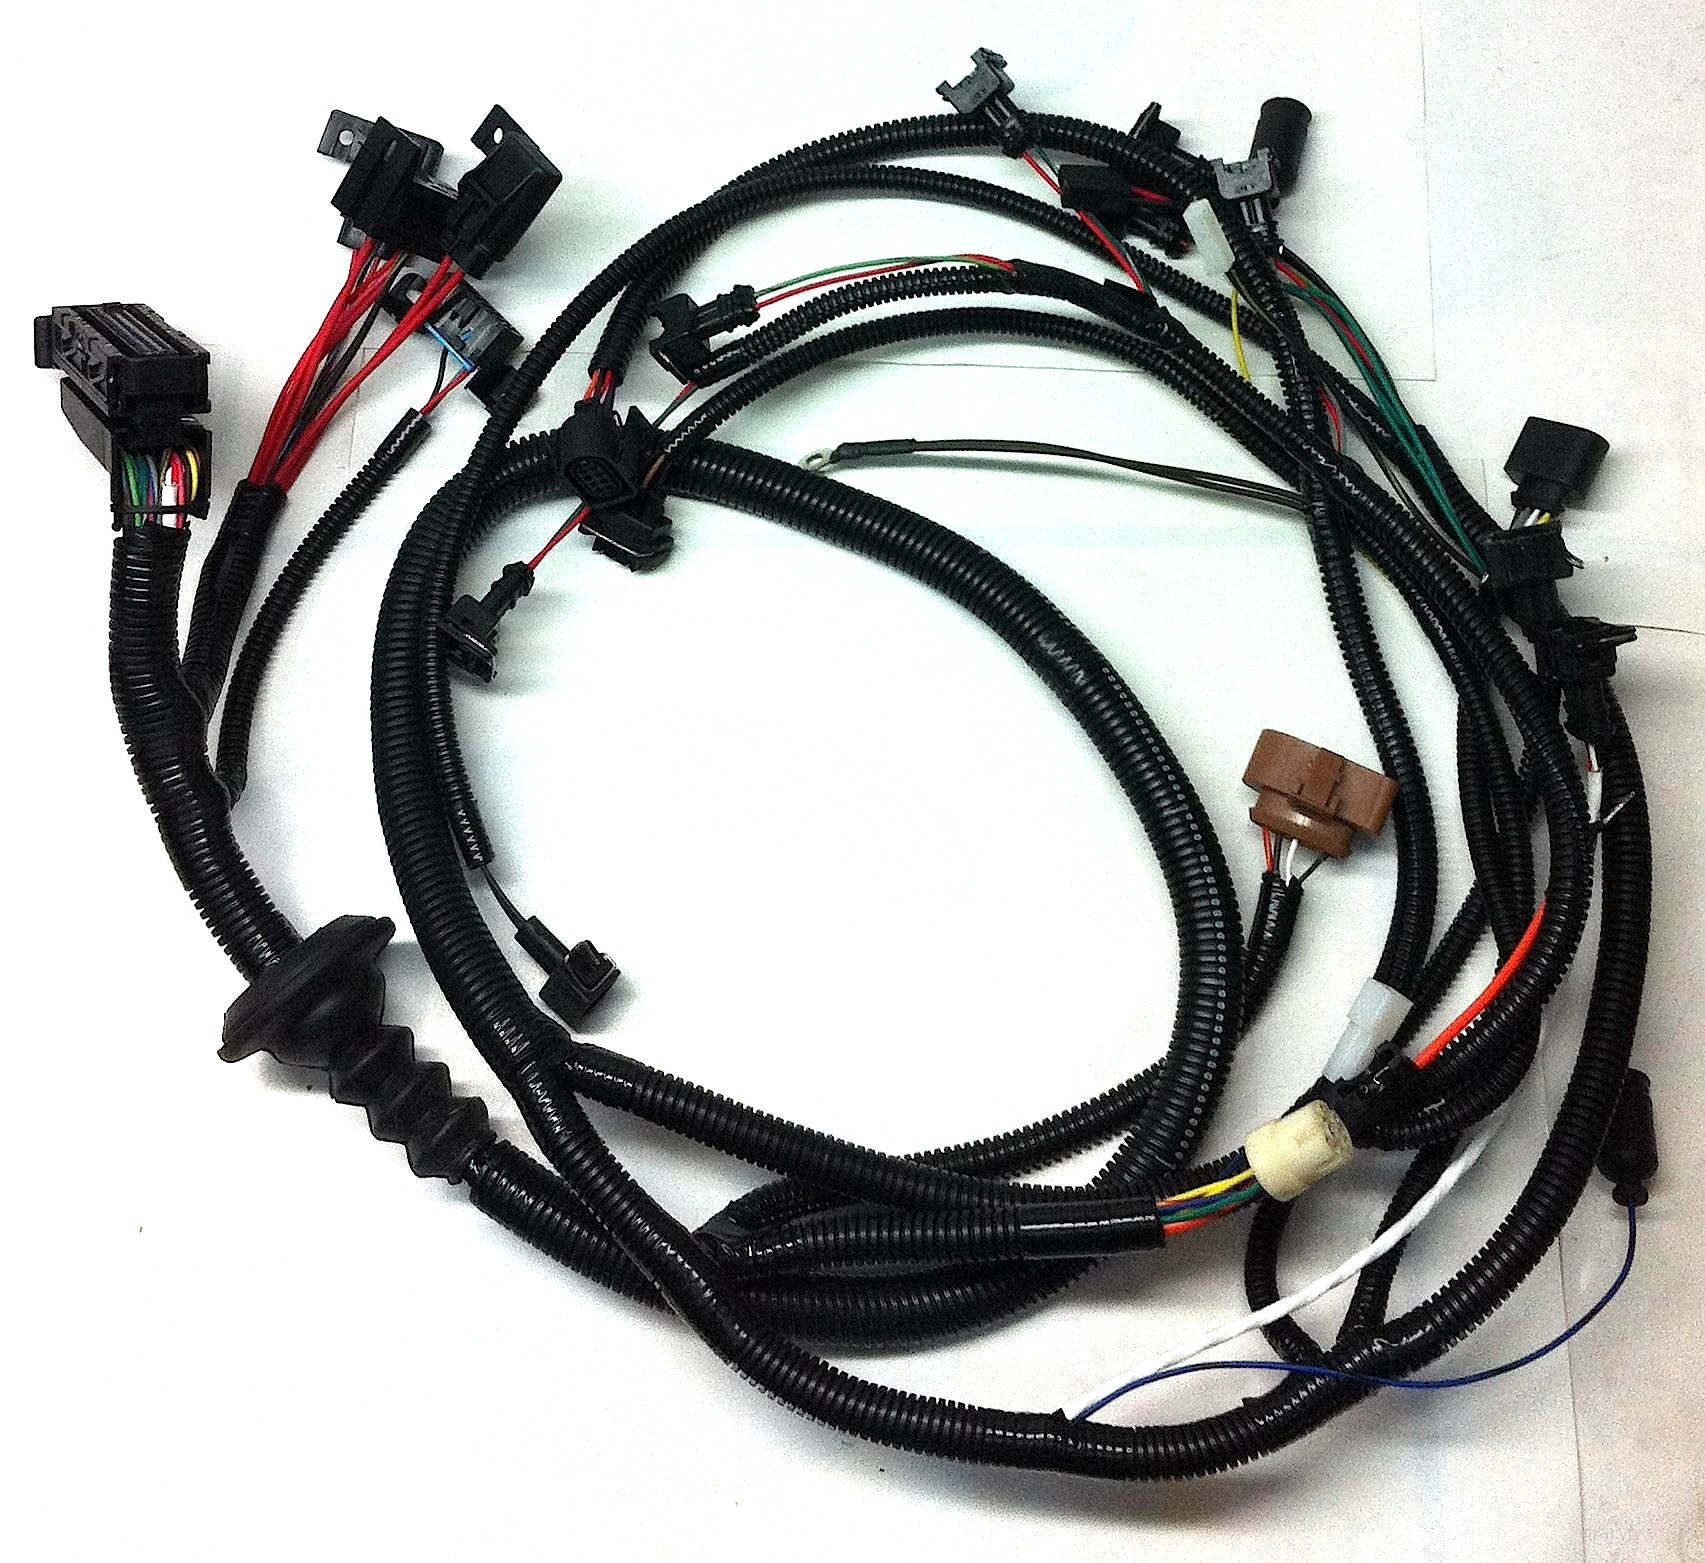 Wiring_Harness_2LR 2lr tiico conversion wiring harness foreign auto & supply, inc Custom Automotive Wiring Harness Kits at bayanpartner.co